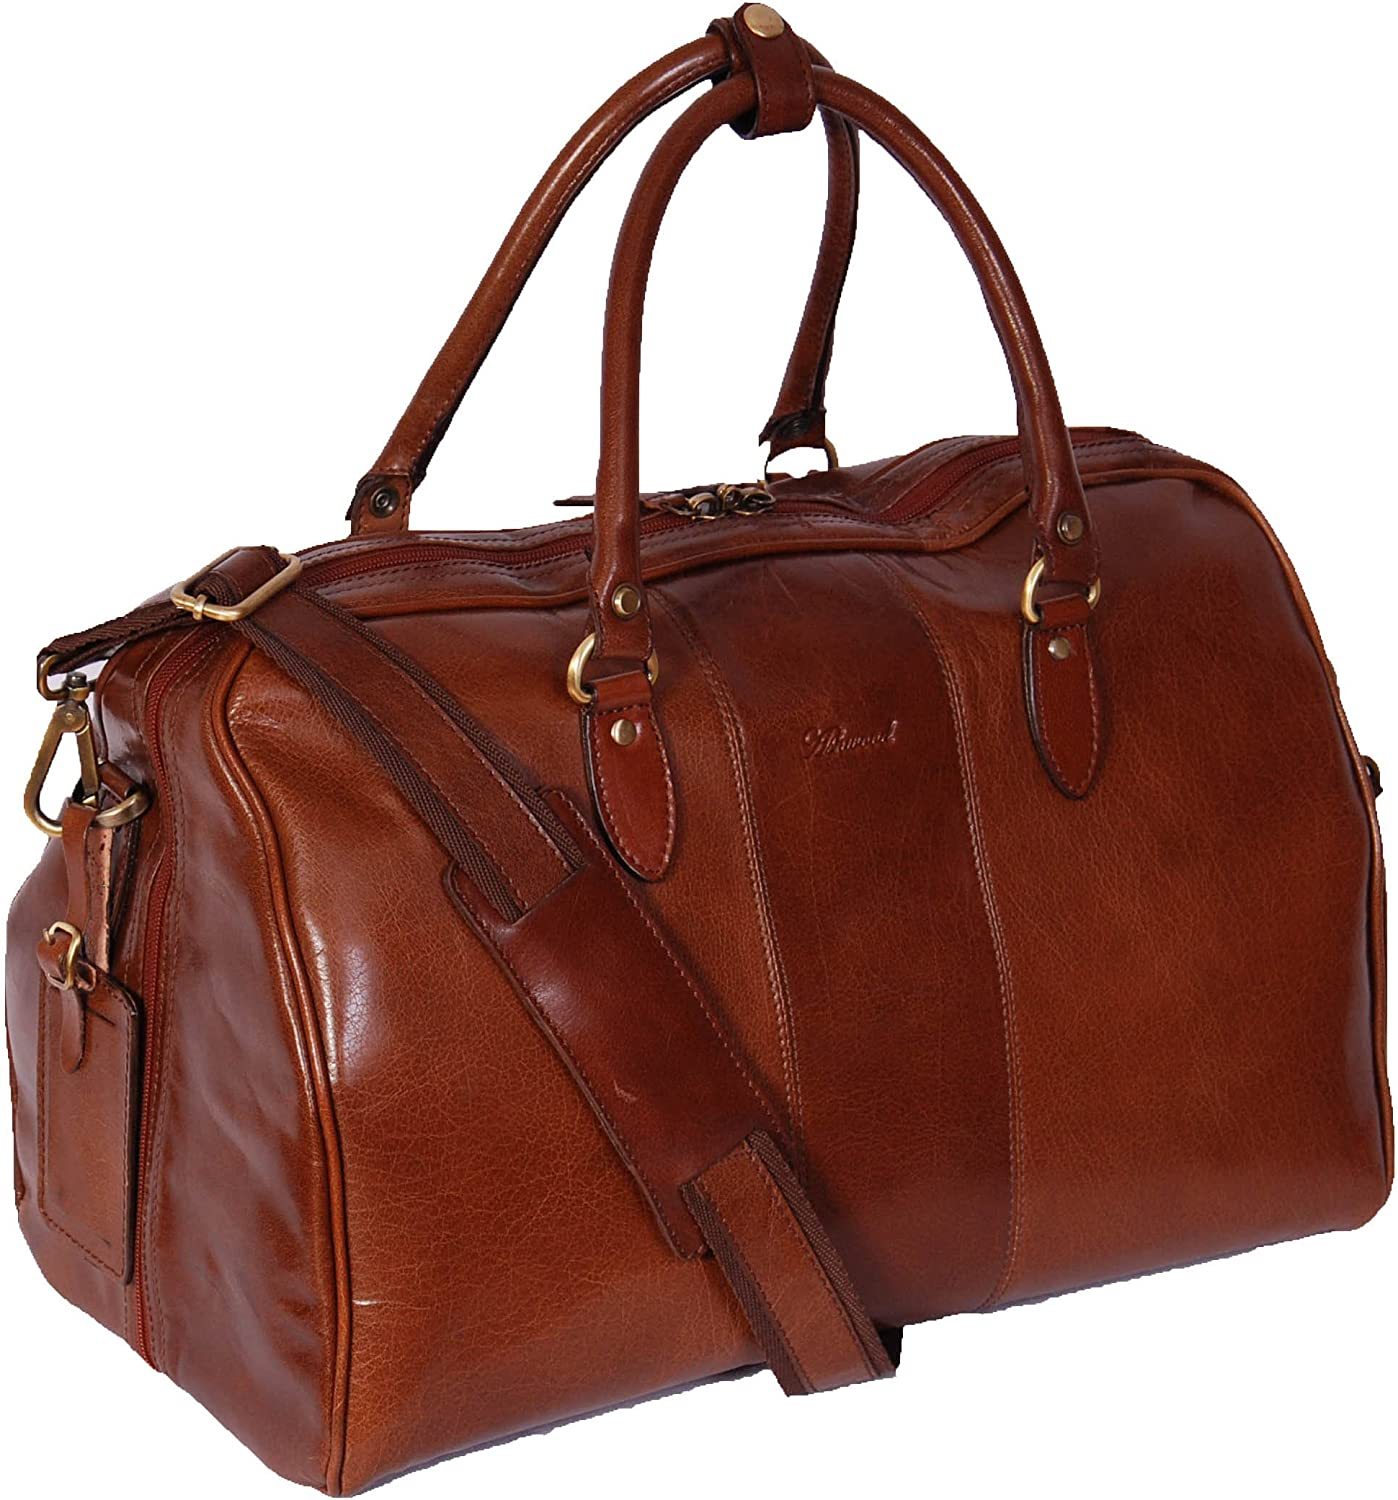 Qualityt  harison Leather Large Travel Hand Luggage Duffel Bag Holdall Weekend